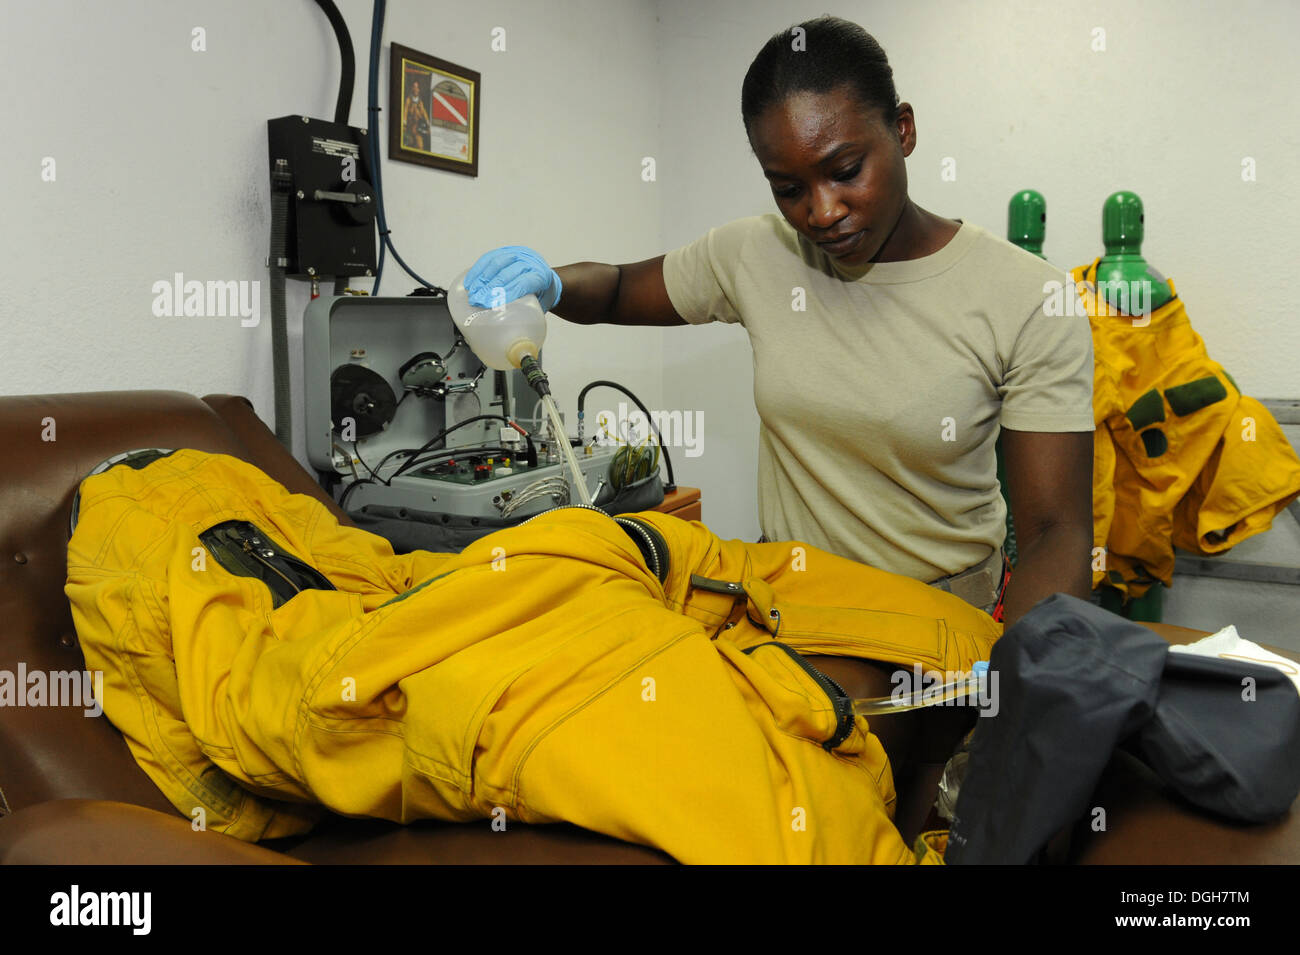 U.S. Staff Sgt. Jasmine Chambers, 99th Expeditionary Reconnaissance Squadron physiological support detachment technician, cleans a full body pressure suit during a post-flight inspection at an undisclosed location in Southwest Asia, Oct. 7, 2013. PSD Airm - Stock Image